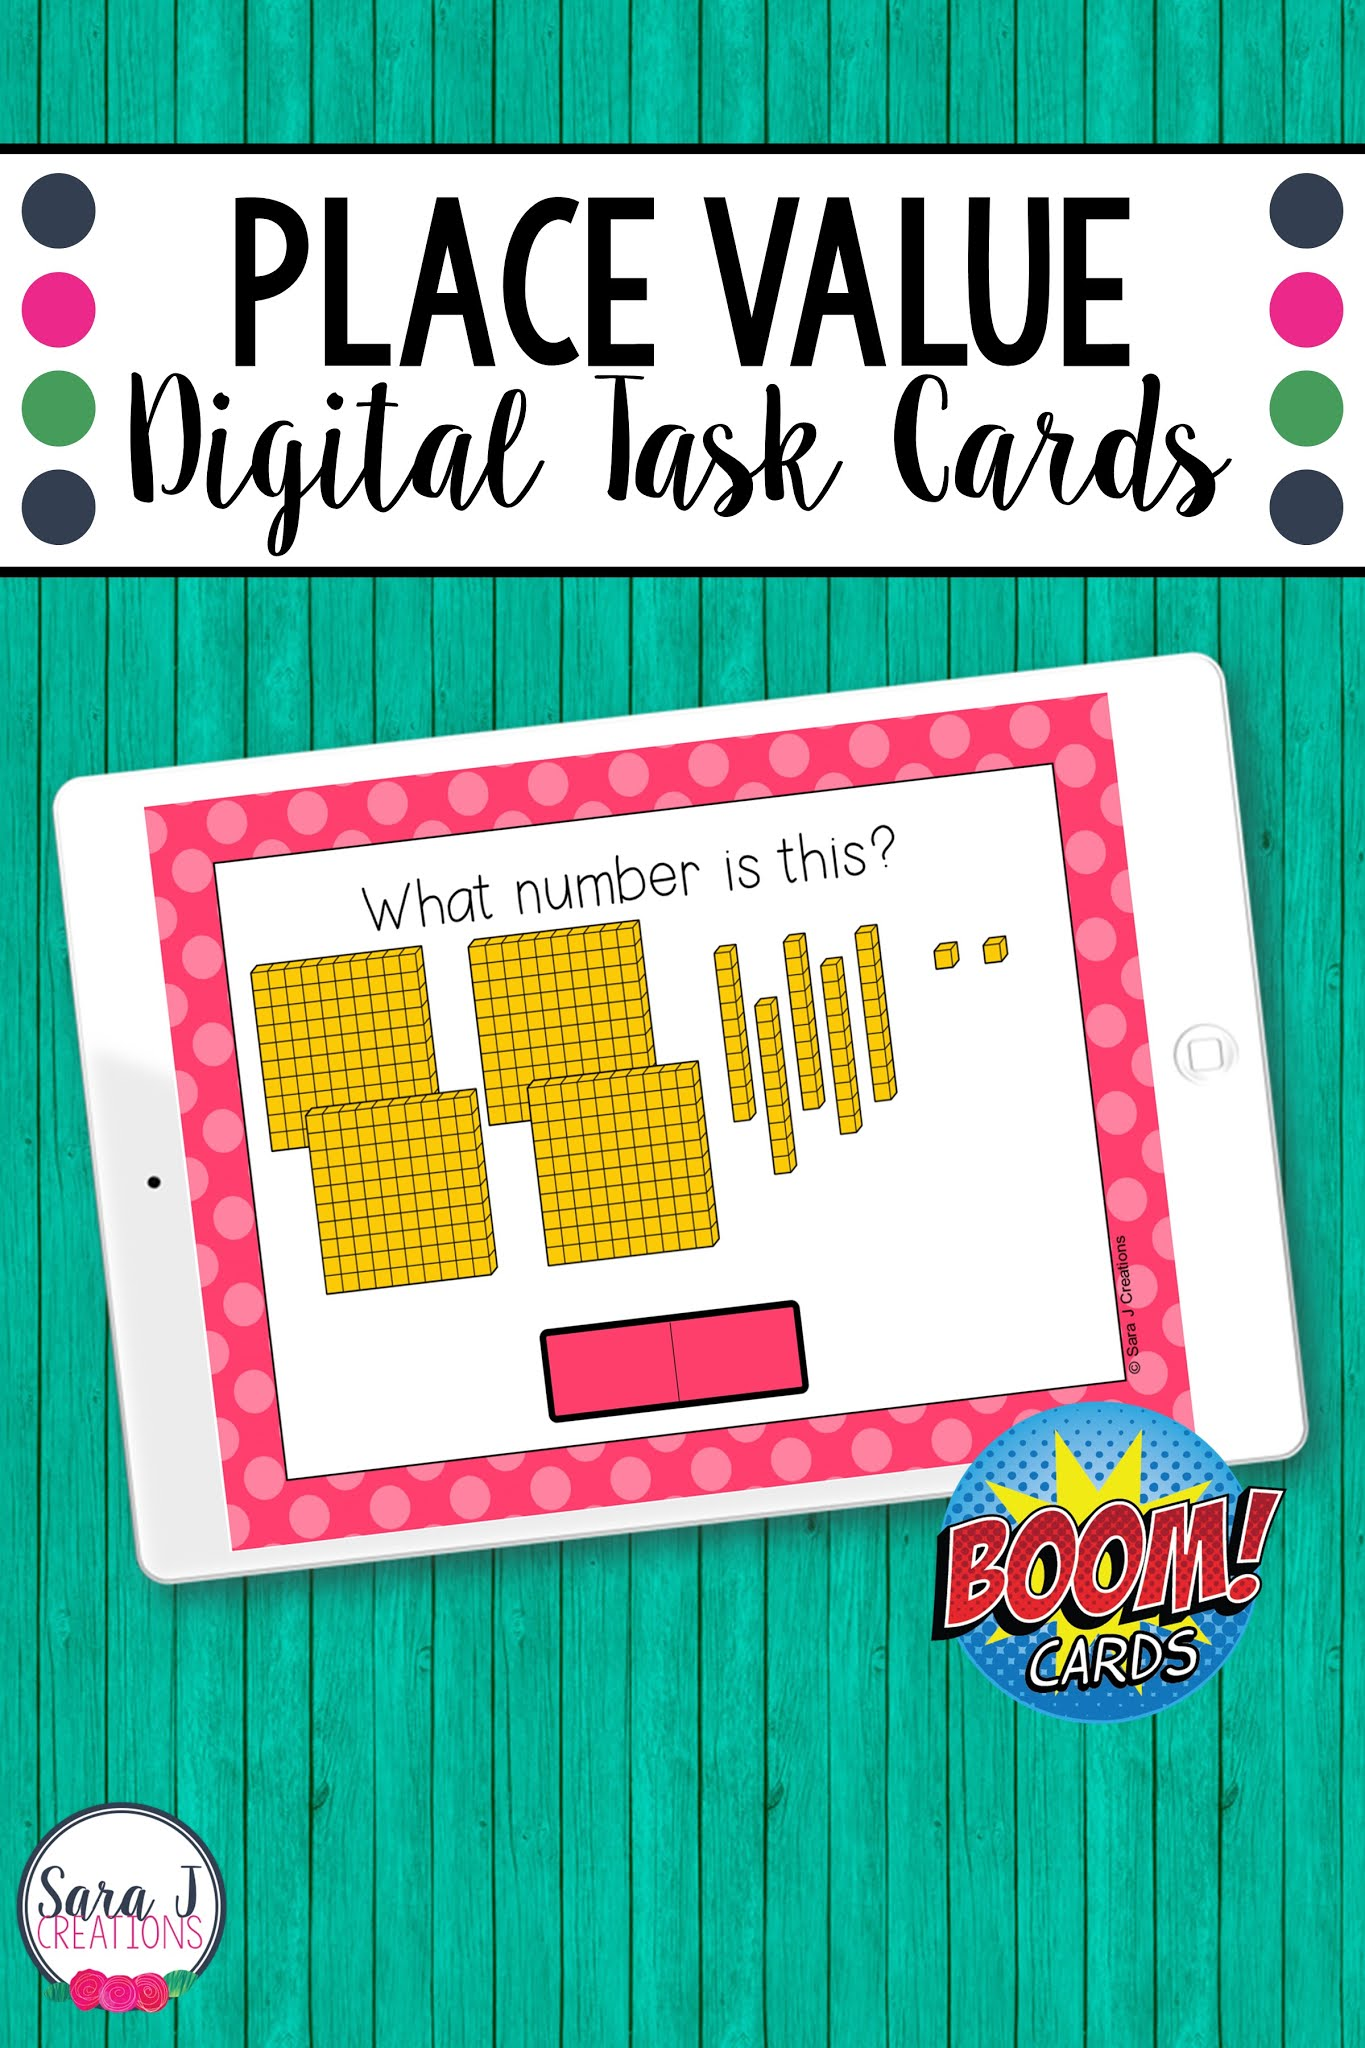 Make digital learning fun with these engaging, no prep Place Value Overview (skip counting, expanded form, comparing numbers, base ten blocks) Boom Cards. These digital task cards are perfect for remote learning but can also be used in a traditional classroom on devices such as ipads, tables, Chromebooks, smartboards, and more. Designed for 2nd grade, these place value task cards include numbers up to 1,000.